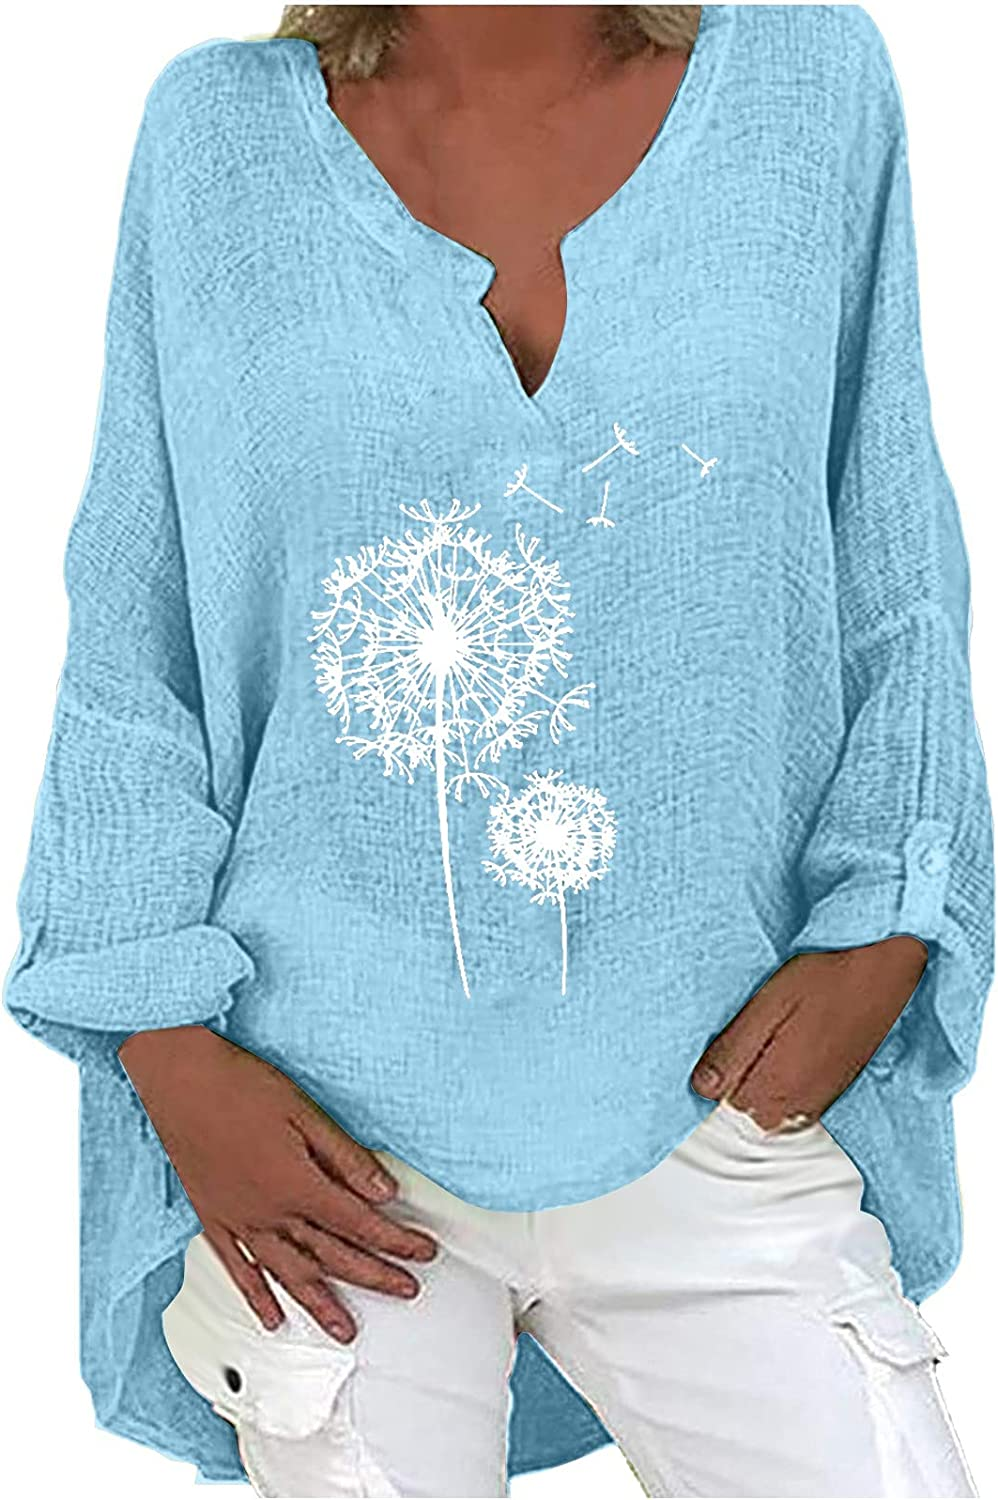 Women Plus Size Cute Graphic Tops Loose Printing Casual Tunic Long Sleeve V-Neck Shirts for Women